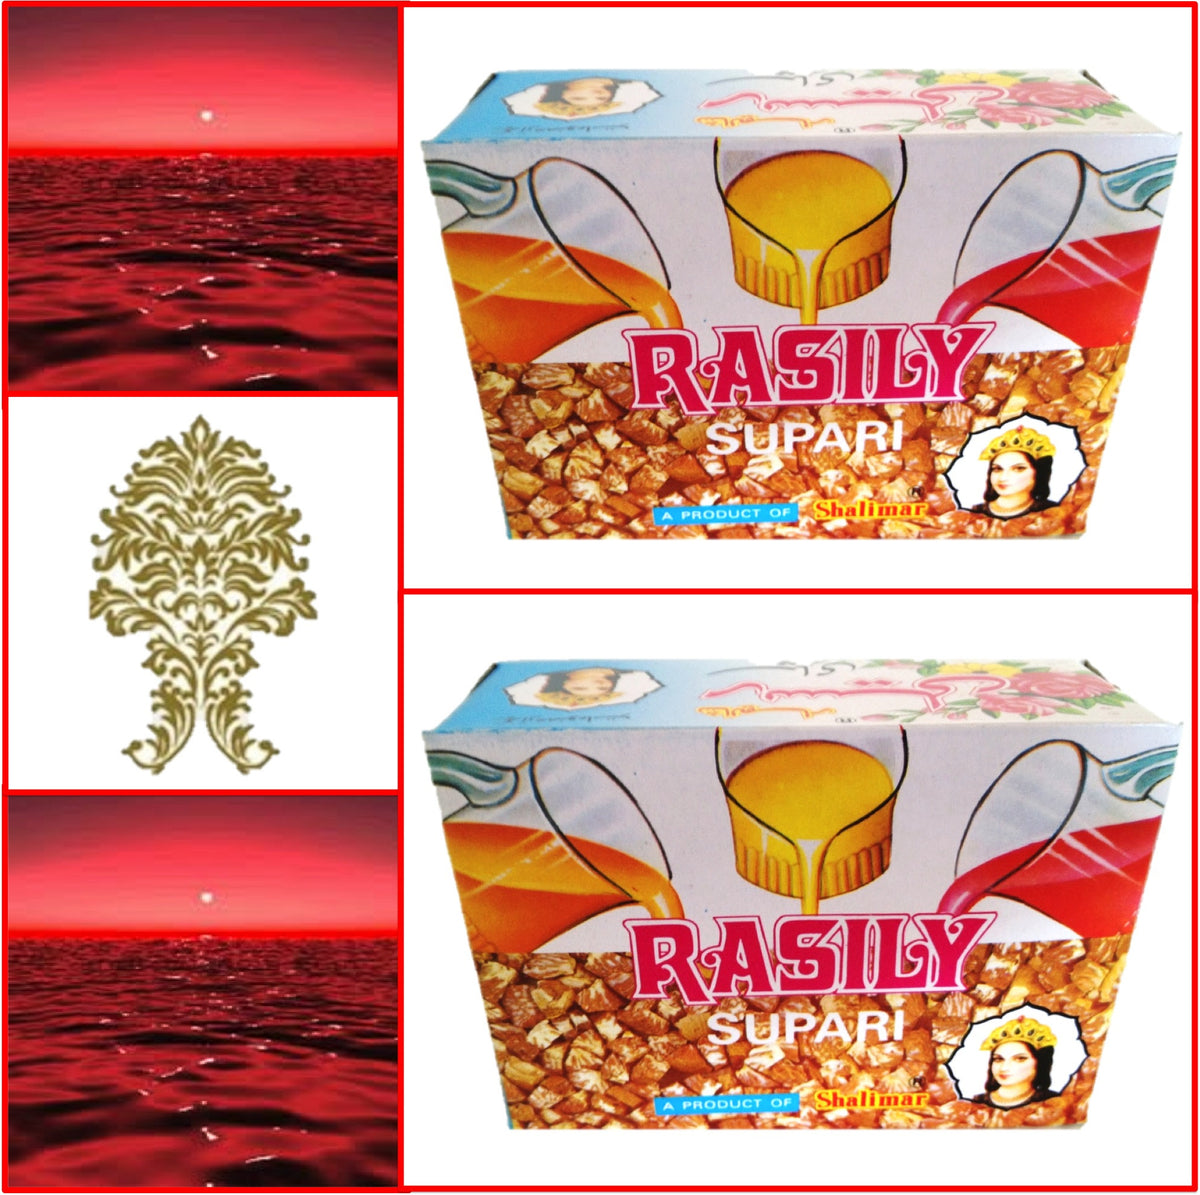 2 Packs Shalimar Rasily Supari Pack 24 pouches 48g Export Quality